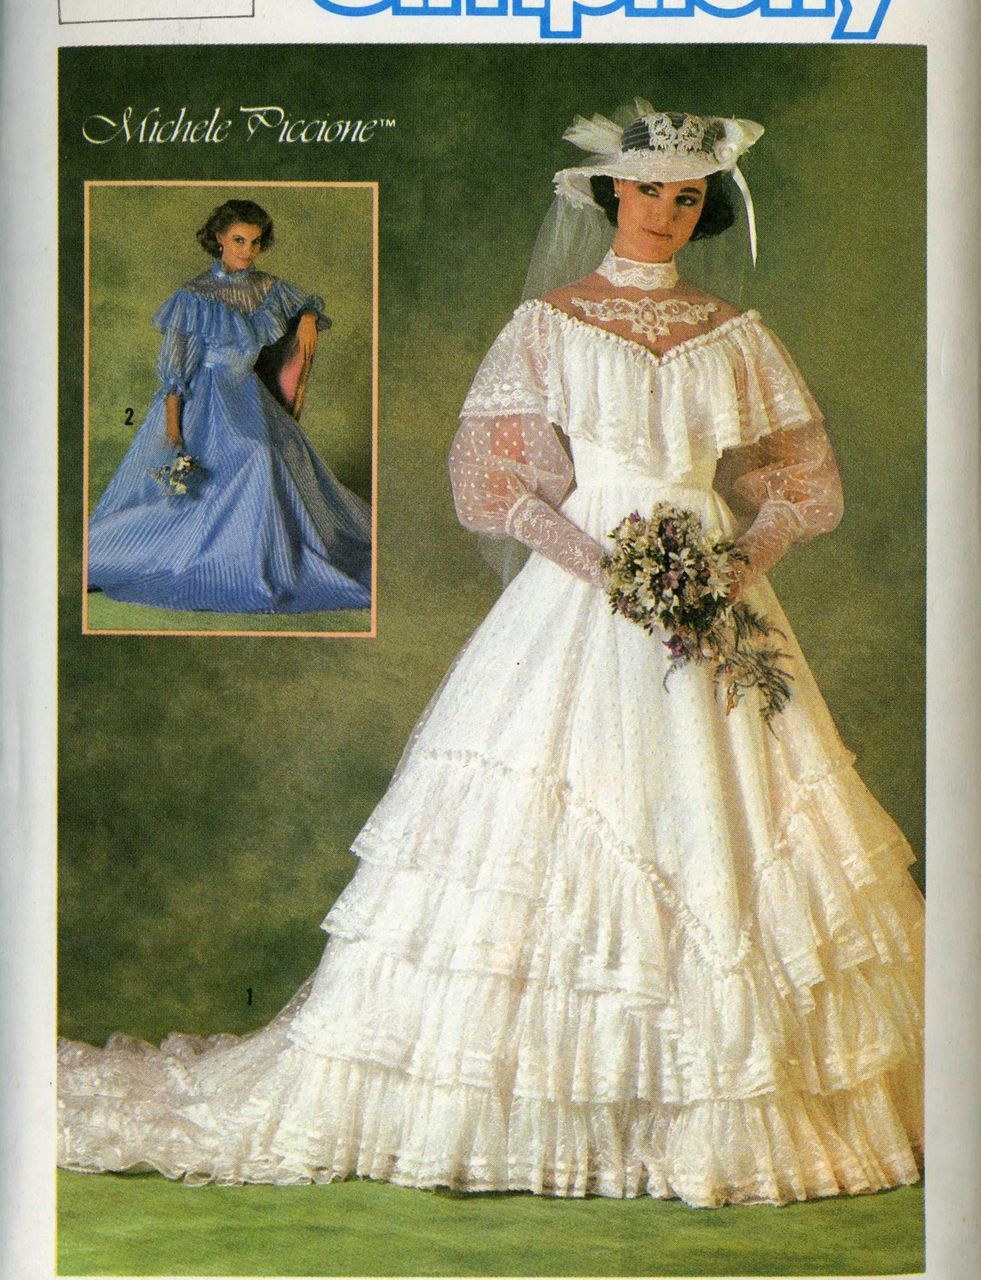 Old Fashioned Southern Belle Wedding Dress I Love This Type Of